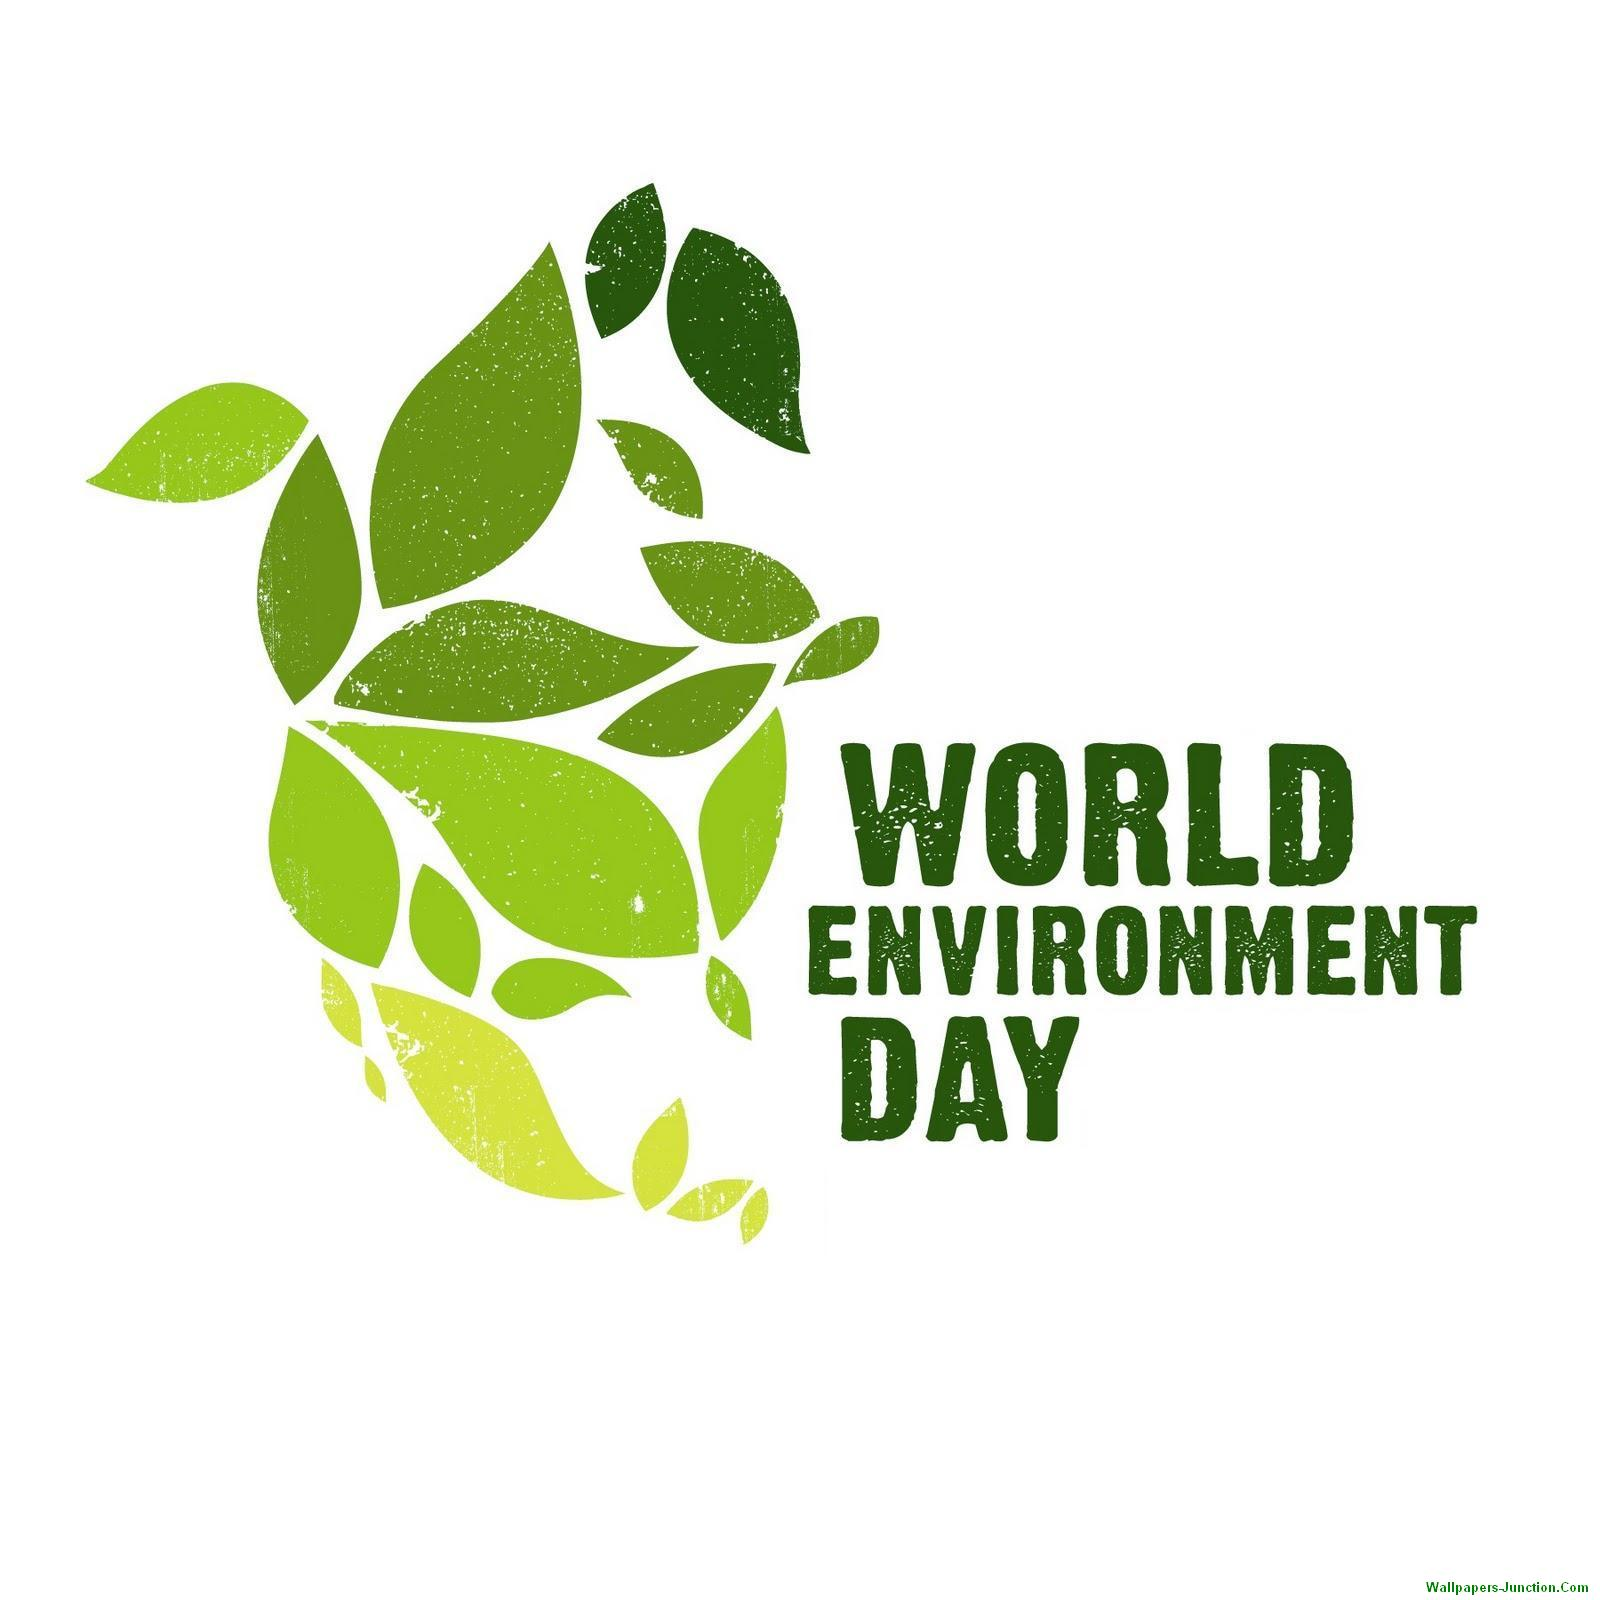 Green Day clipart eco friendly India so Friendly Friendly http